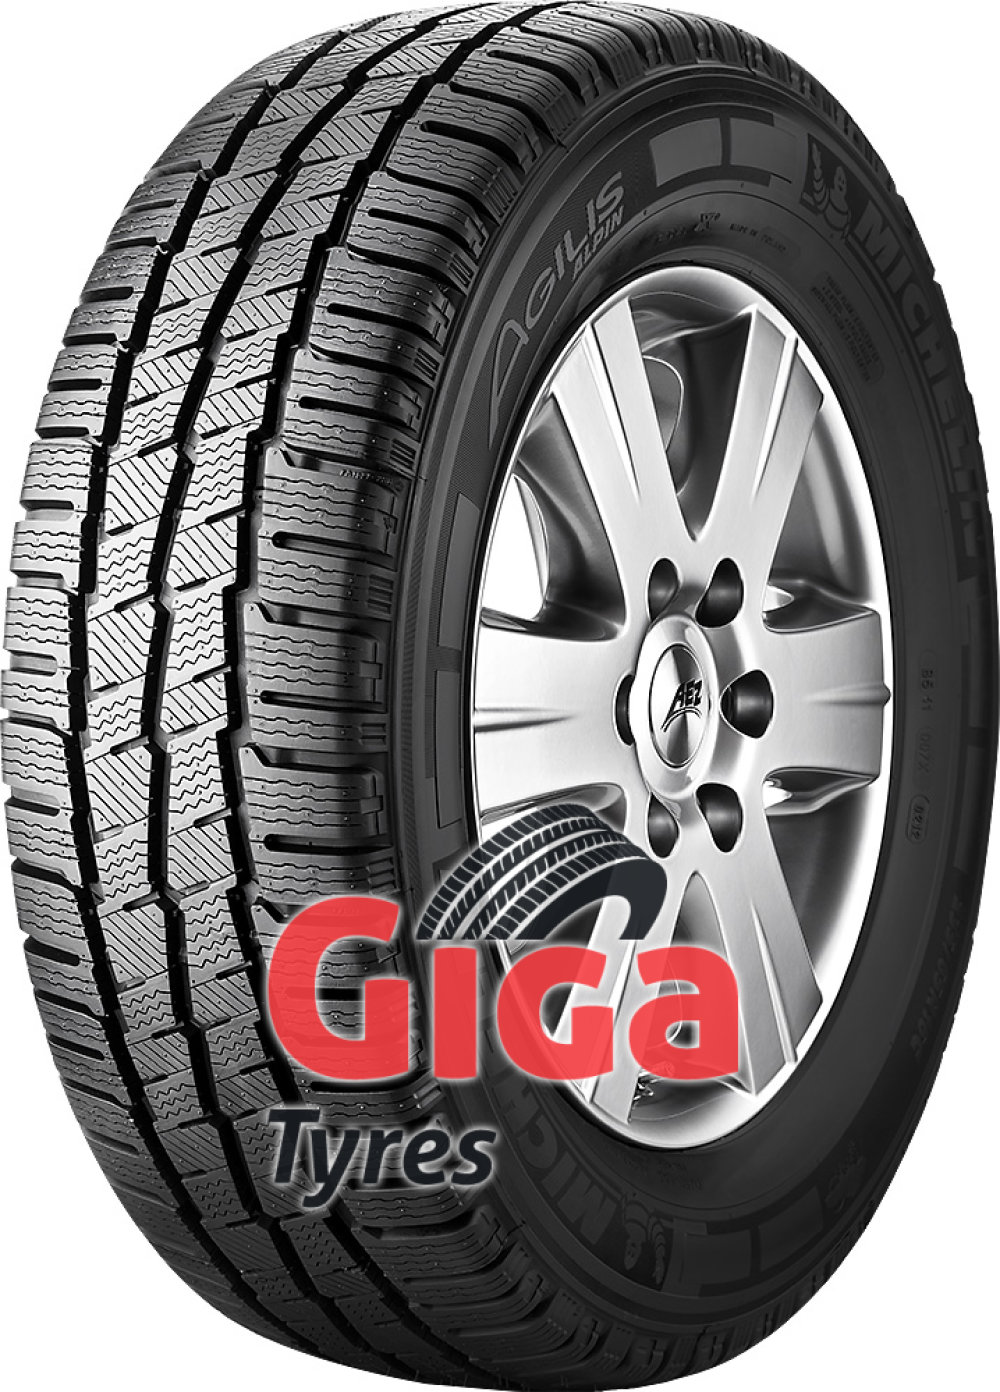 Michelin Agilis Alpin ( 225/65 R16C 112/110R )